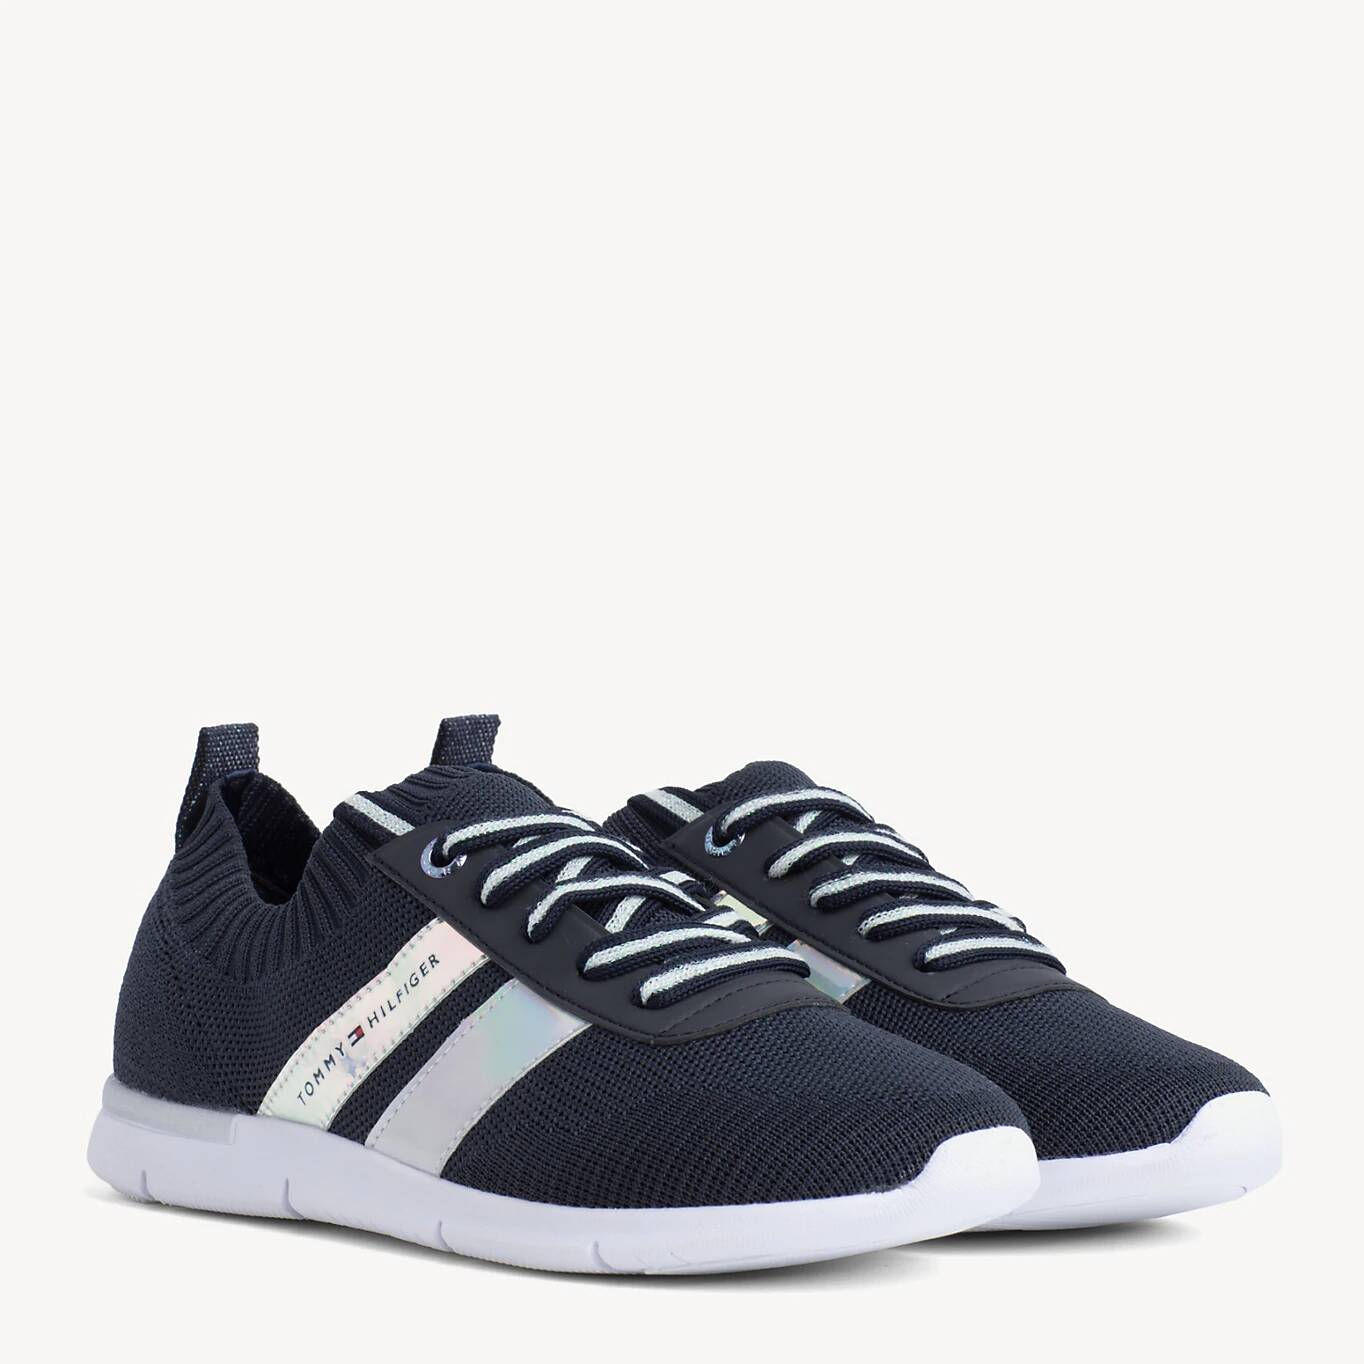 Tommy Hilfiger modré tenisky Corporate Detail Light Sneaker Midnight - 39